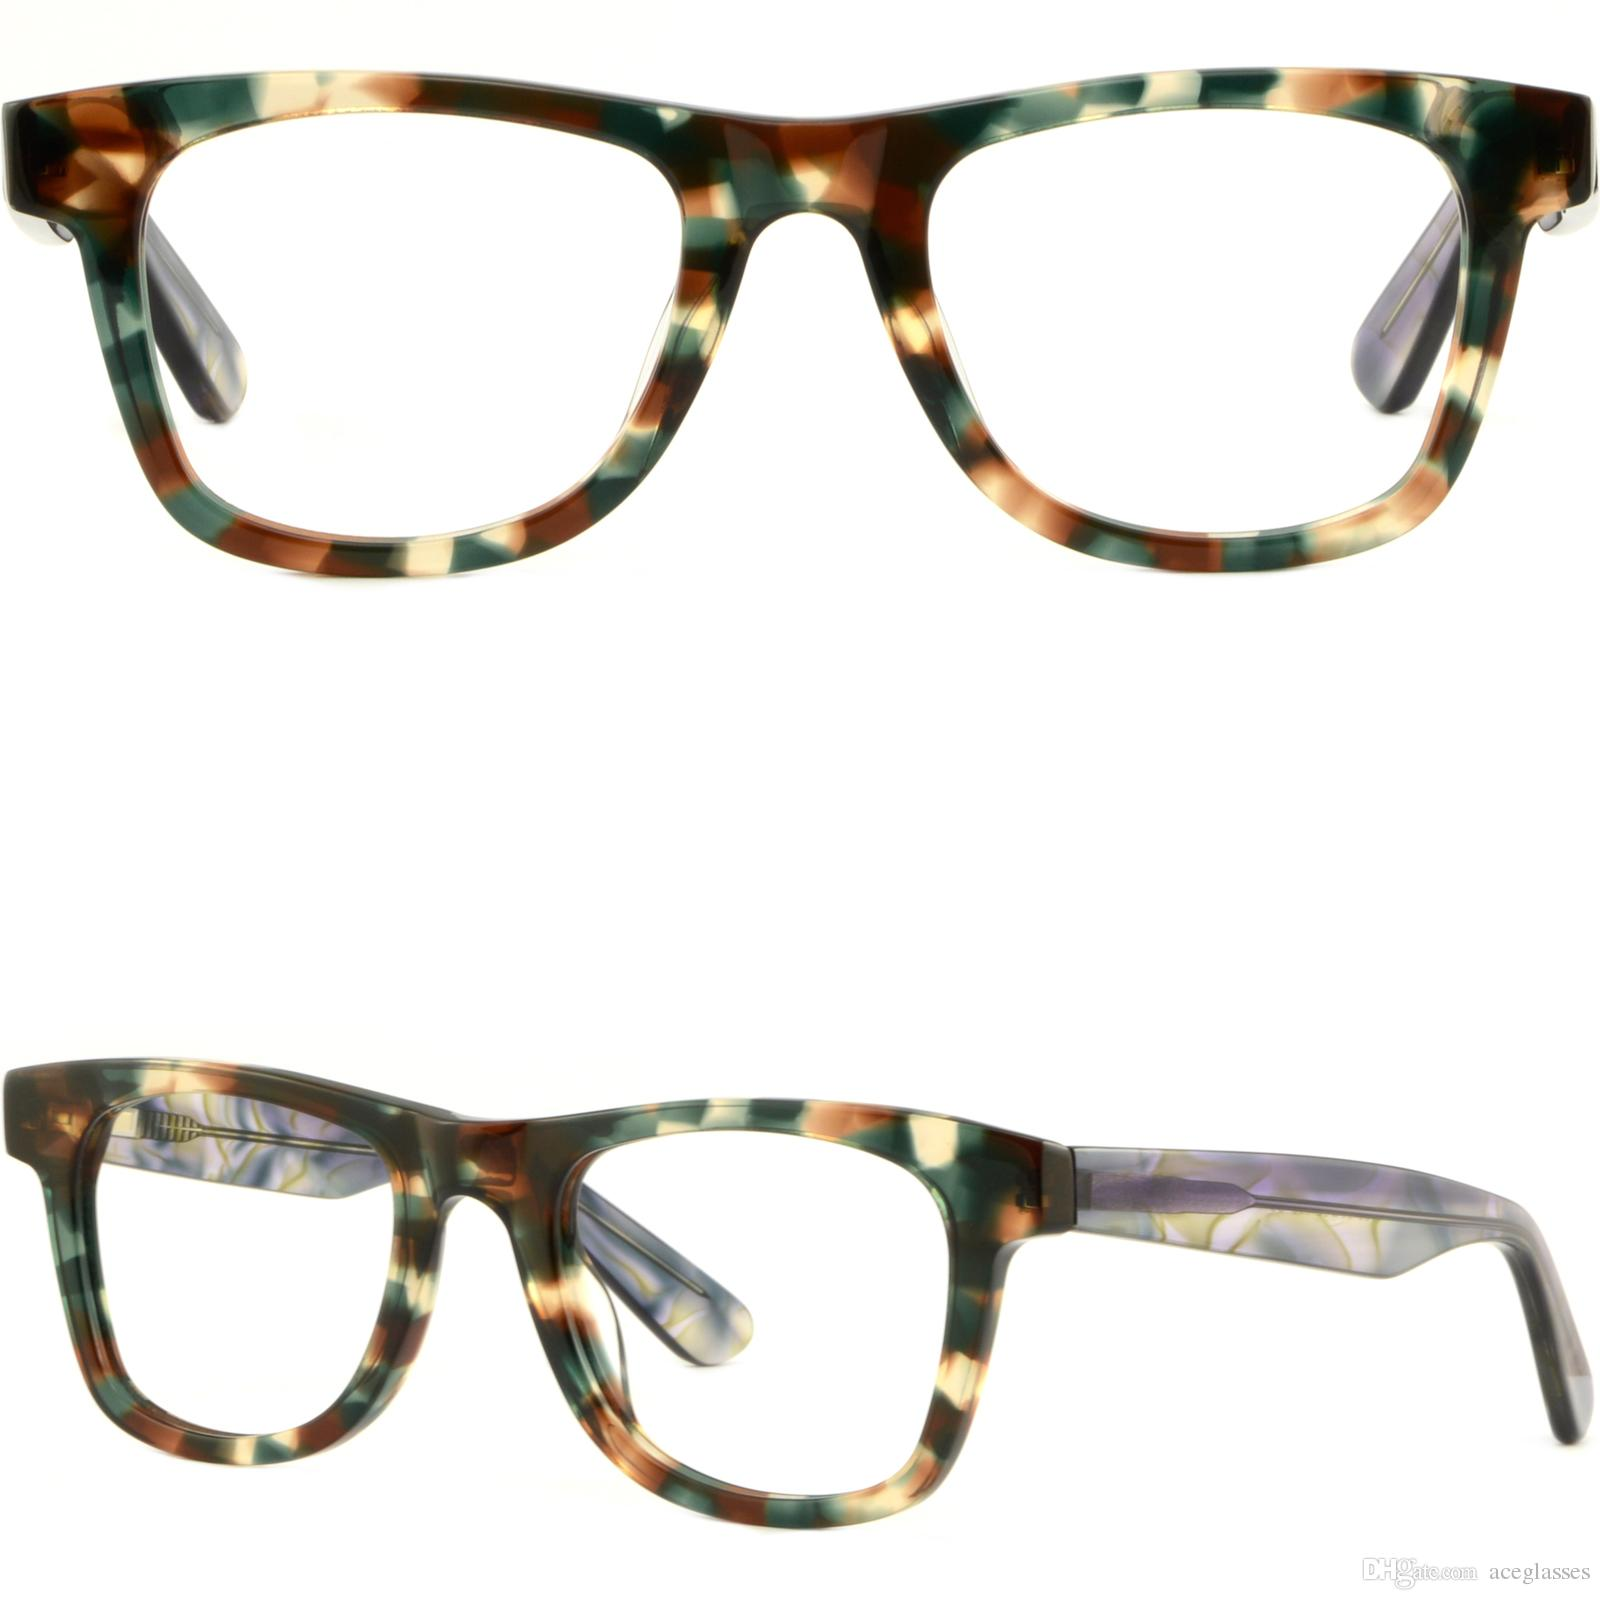 4e8352409cb Thick Strong Womens Frames Large Wide Acetate Prescription Glasses Spring  Hinges Kawasaki Eyeglasses Frames Lei Eyeglass Frames From Aceglasses